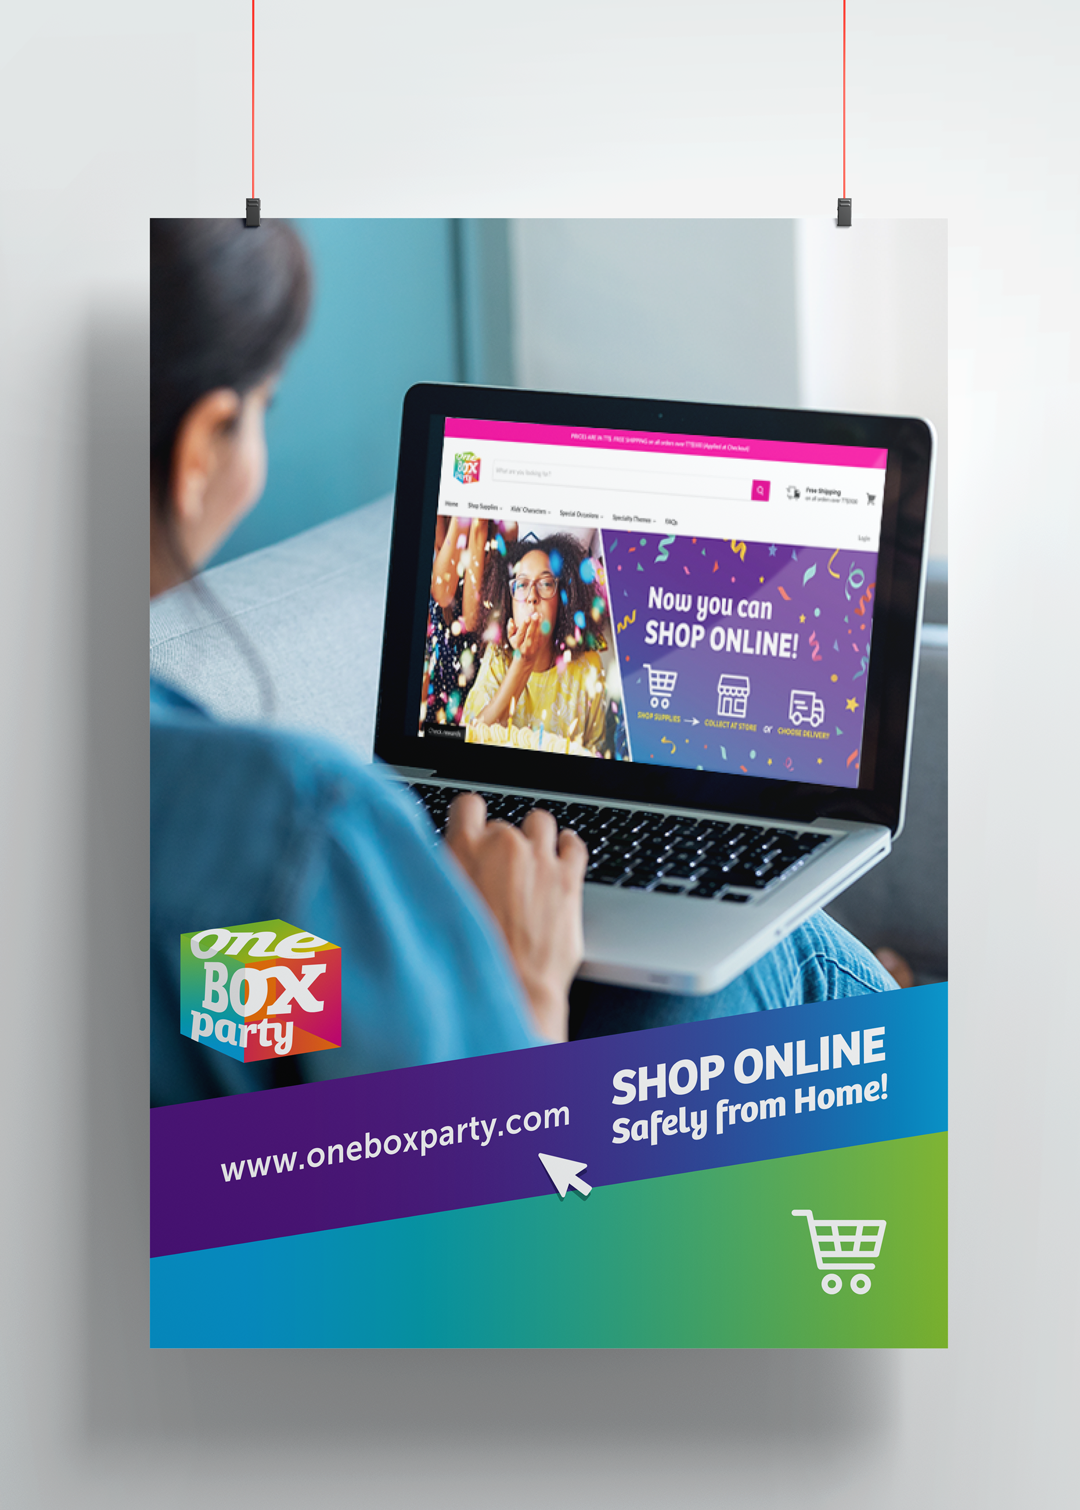 One Box Party Trinidad – Online Store launch posters